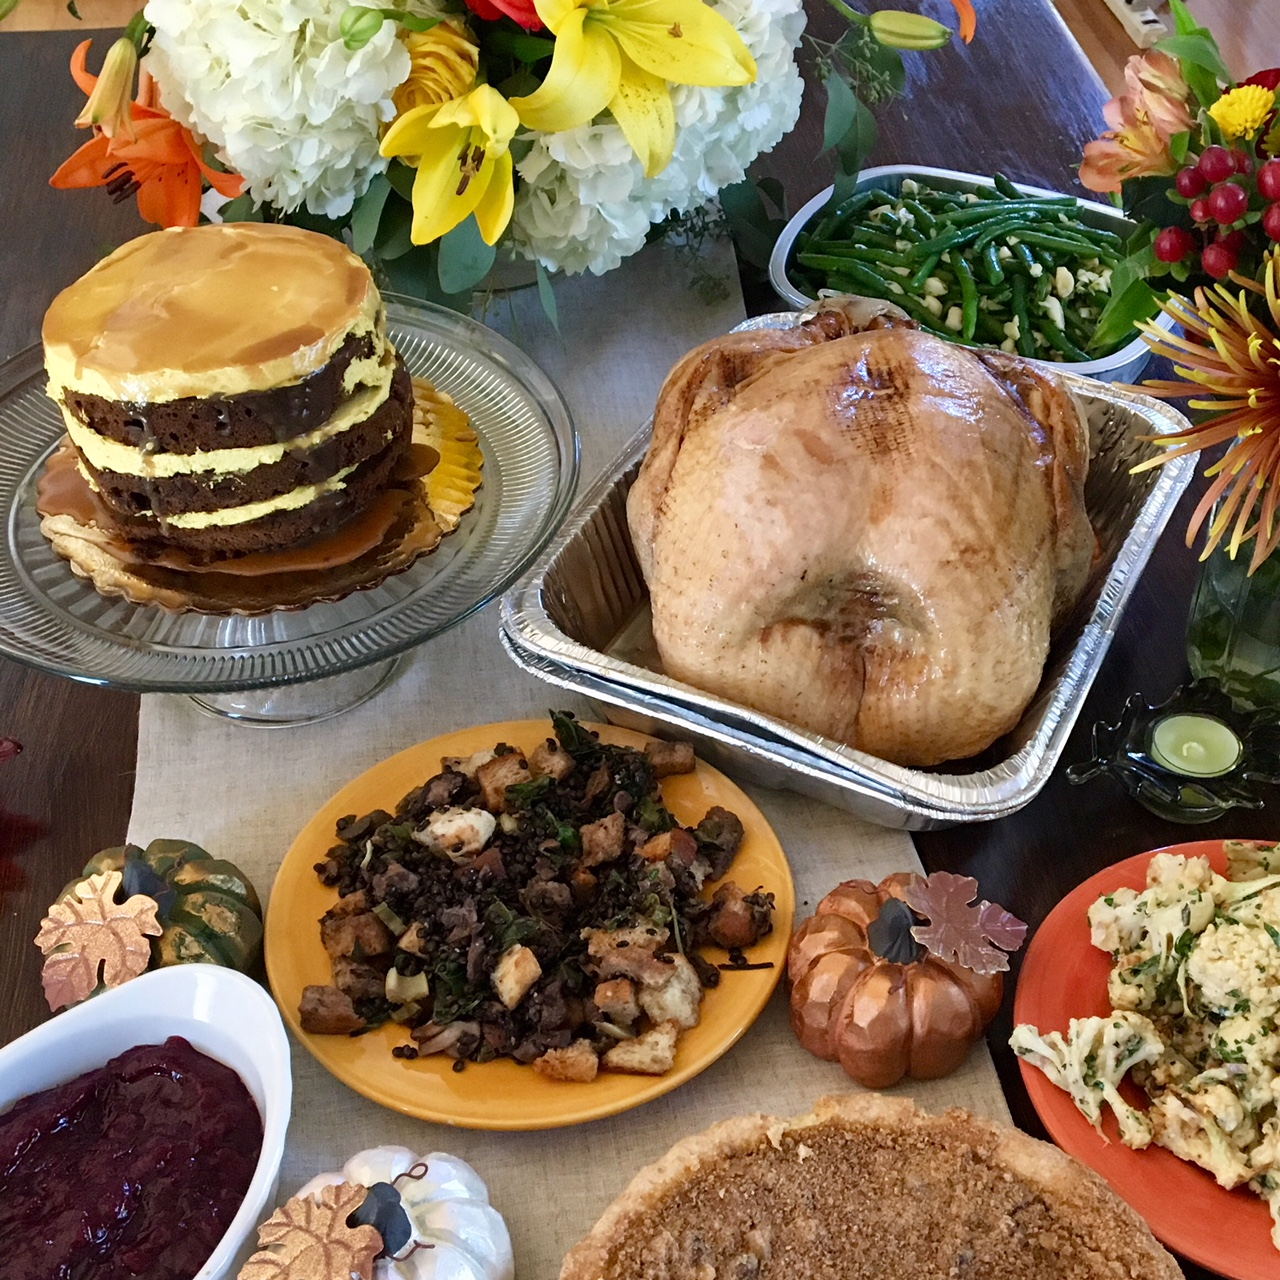 Friendsgiving Made Easy with Whole Foods Market Holiday Meals – It's